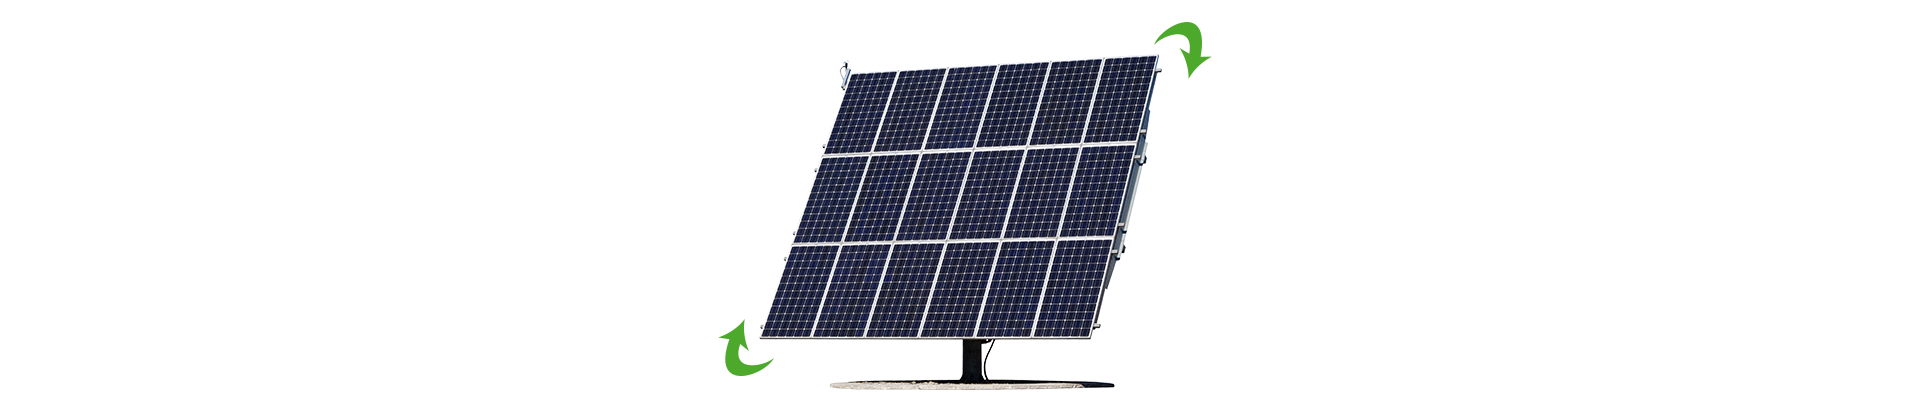 House with solar panels clipart download Energy Tips For Boondocking On Solar Power. Gillettes Interstate RV download